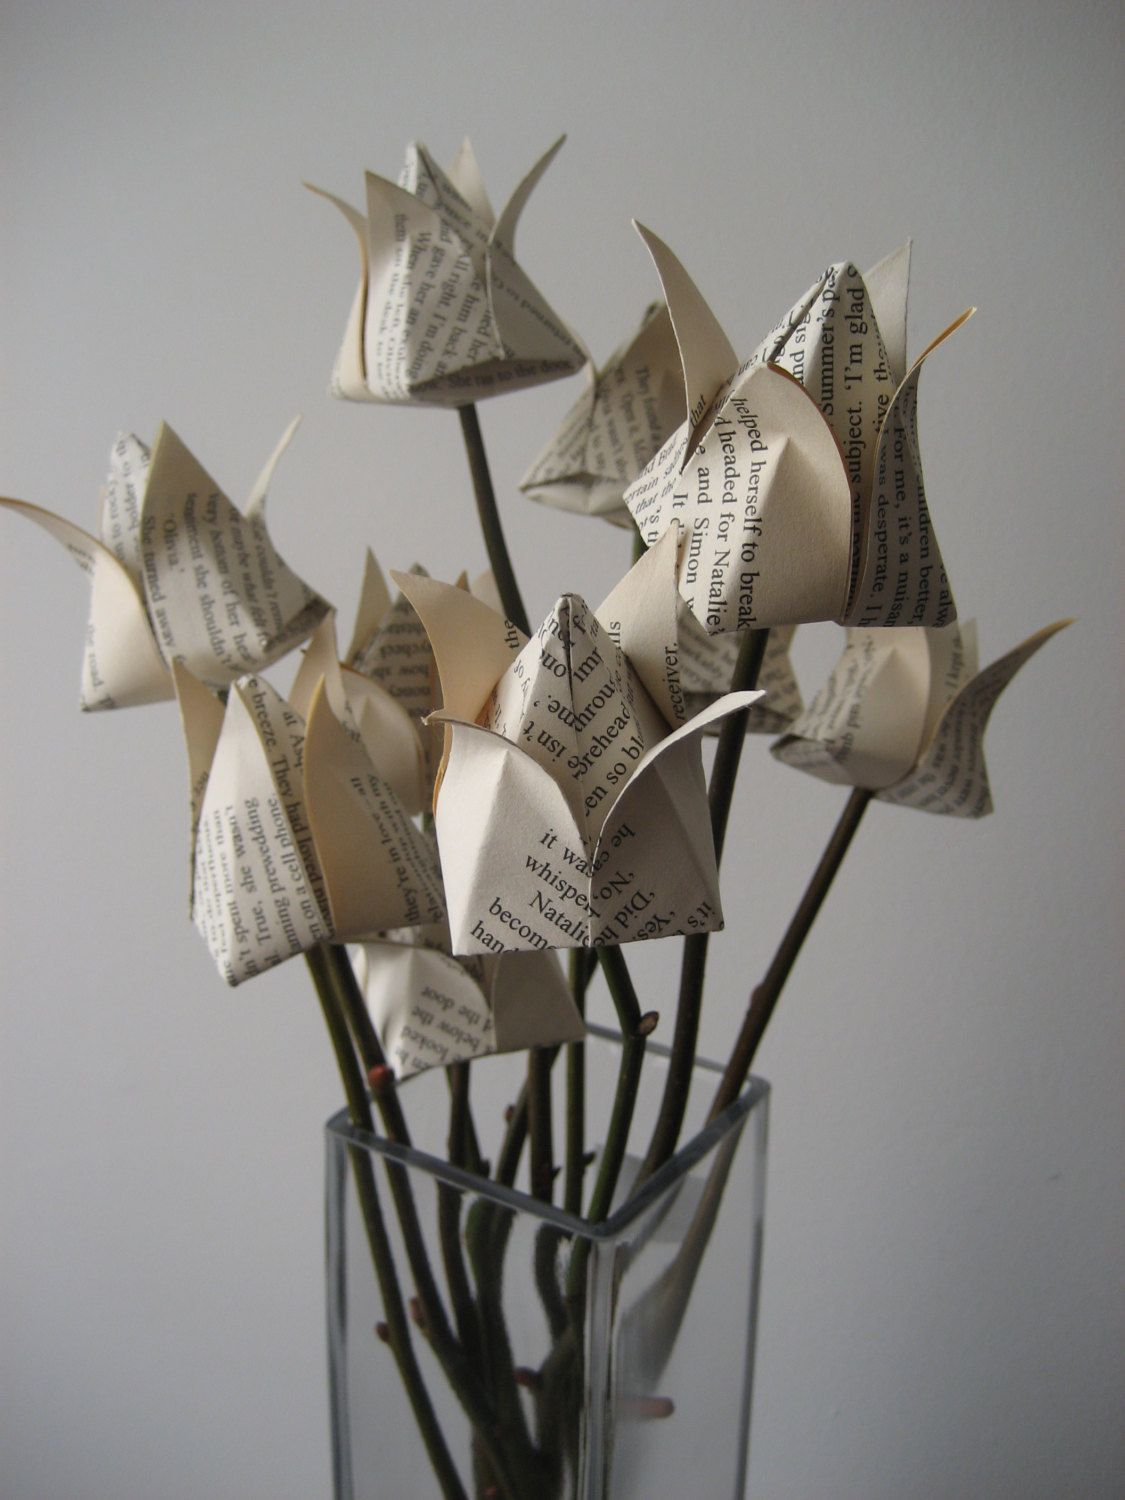 Top 10 Most Inventive Origami Home Décor Items - | Origami ... - photo#2